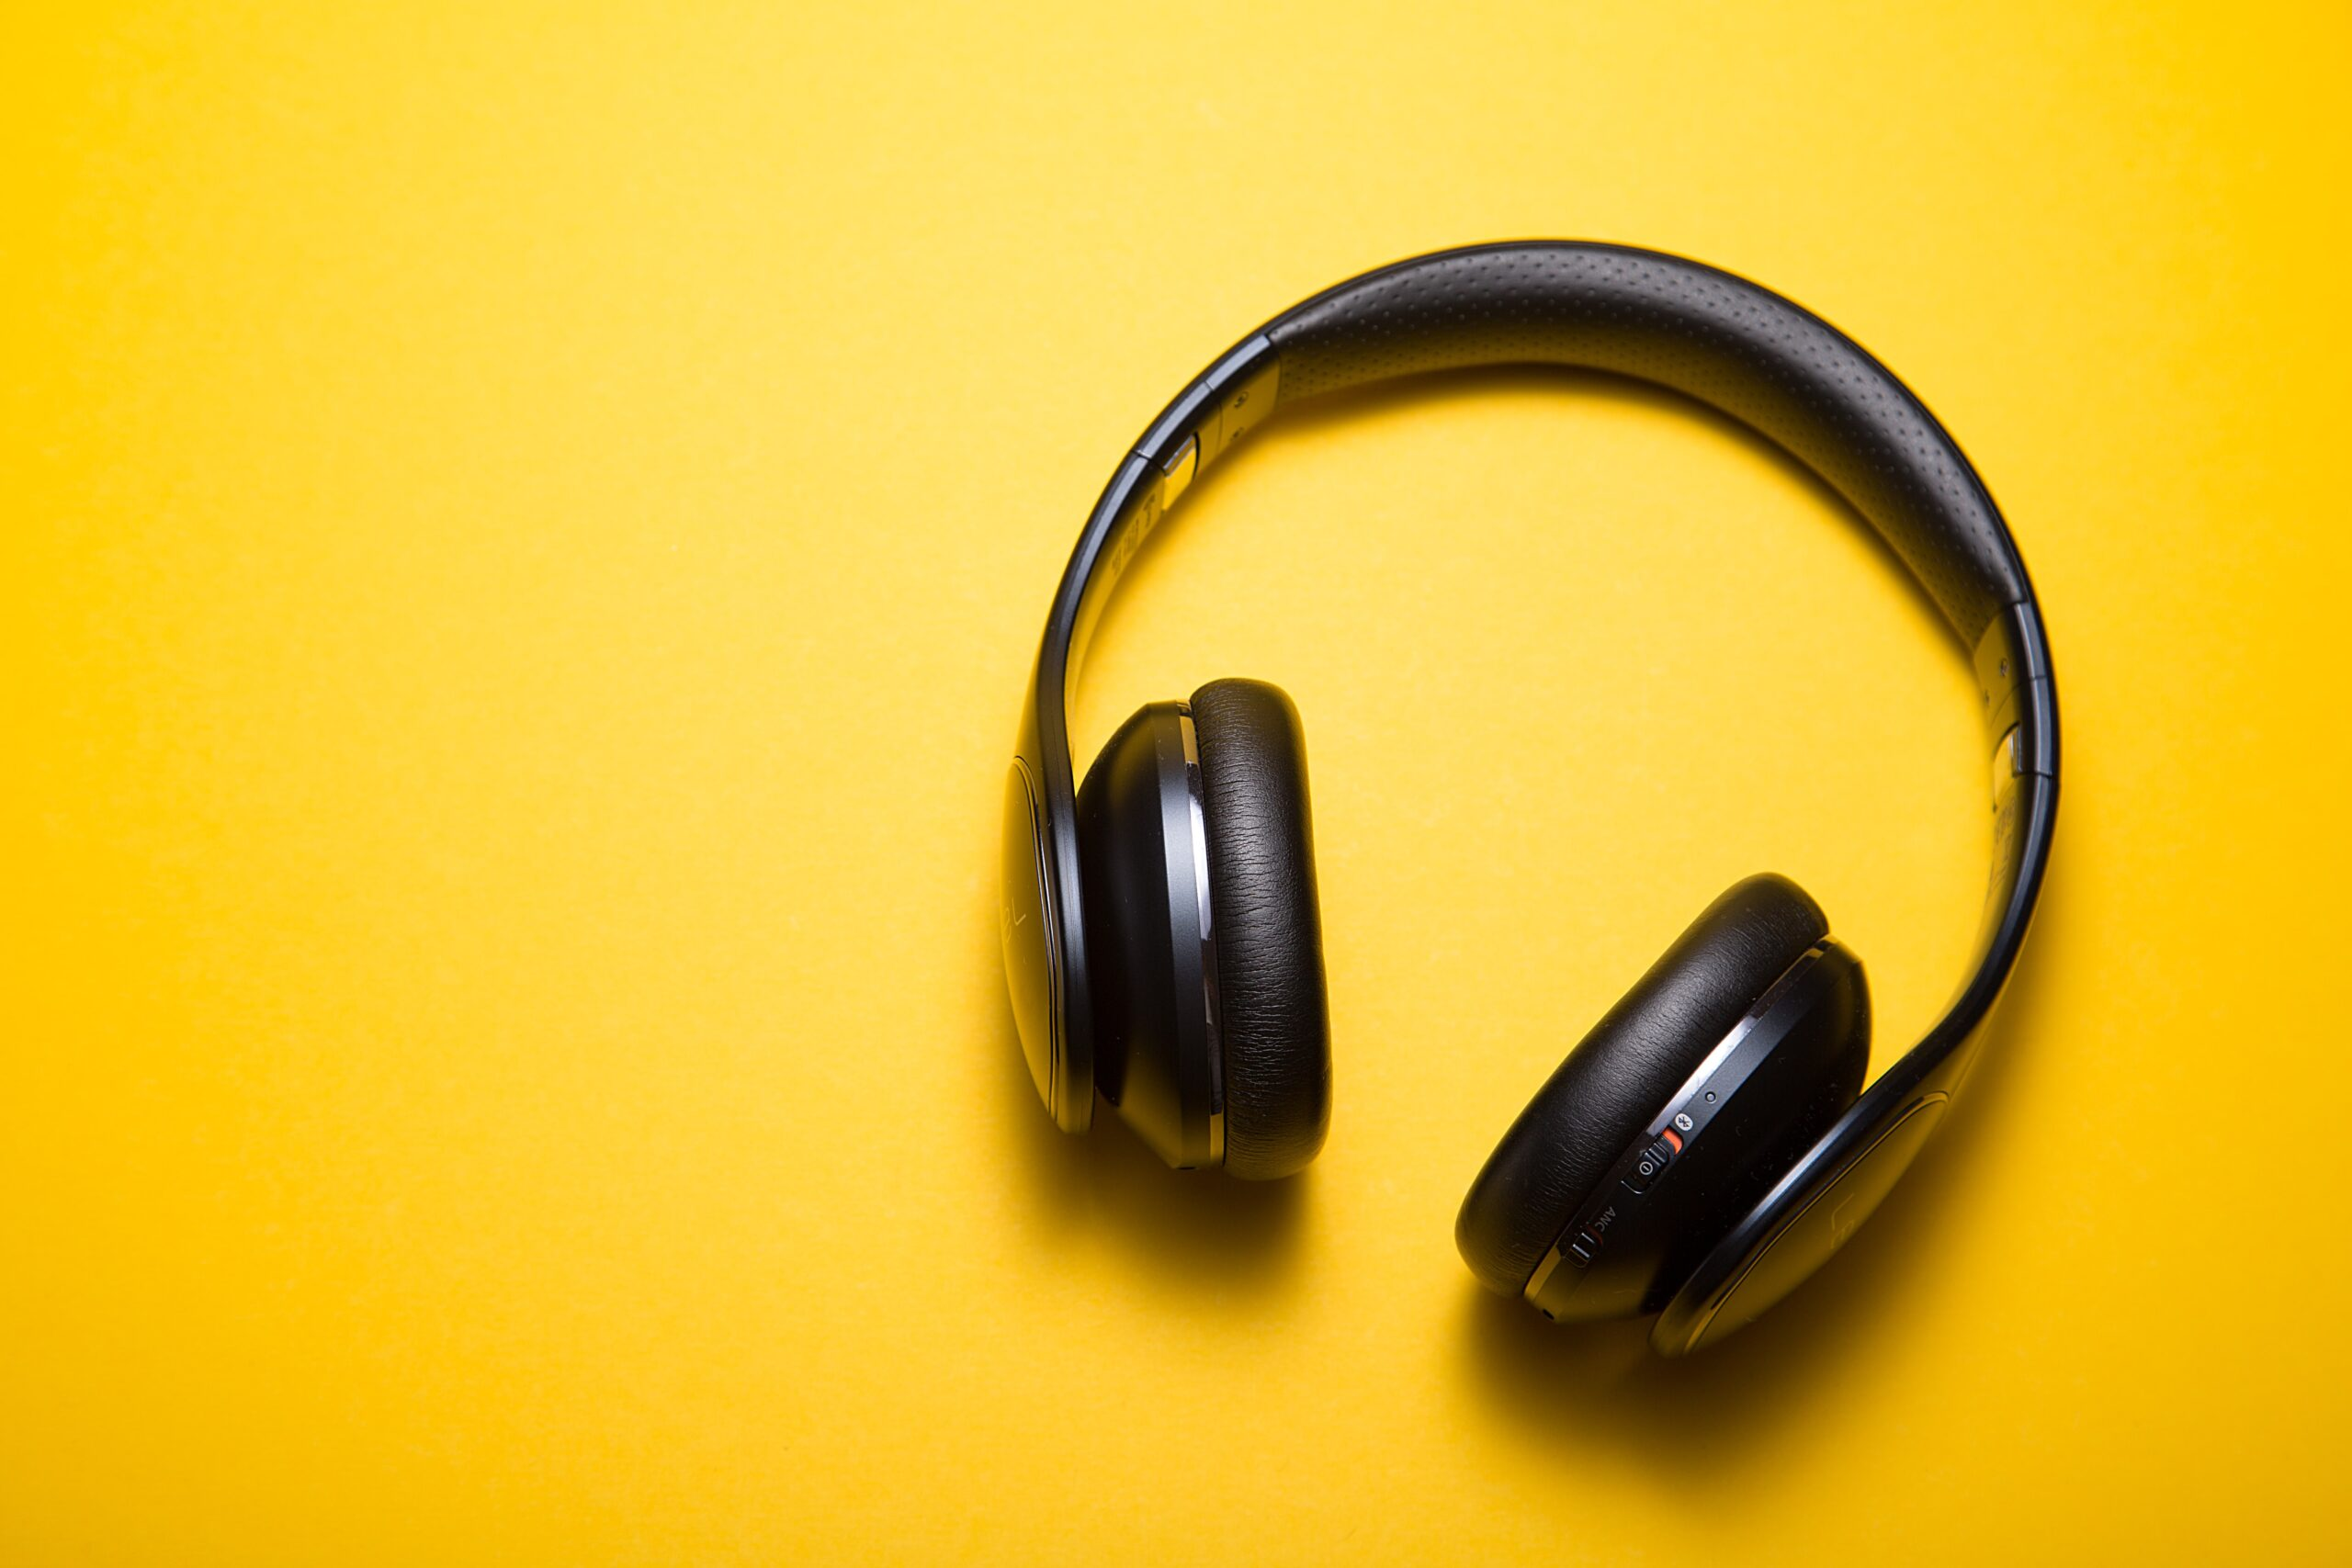 over the ear headphones on a yellow background